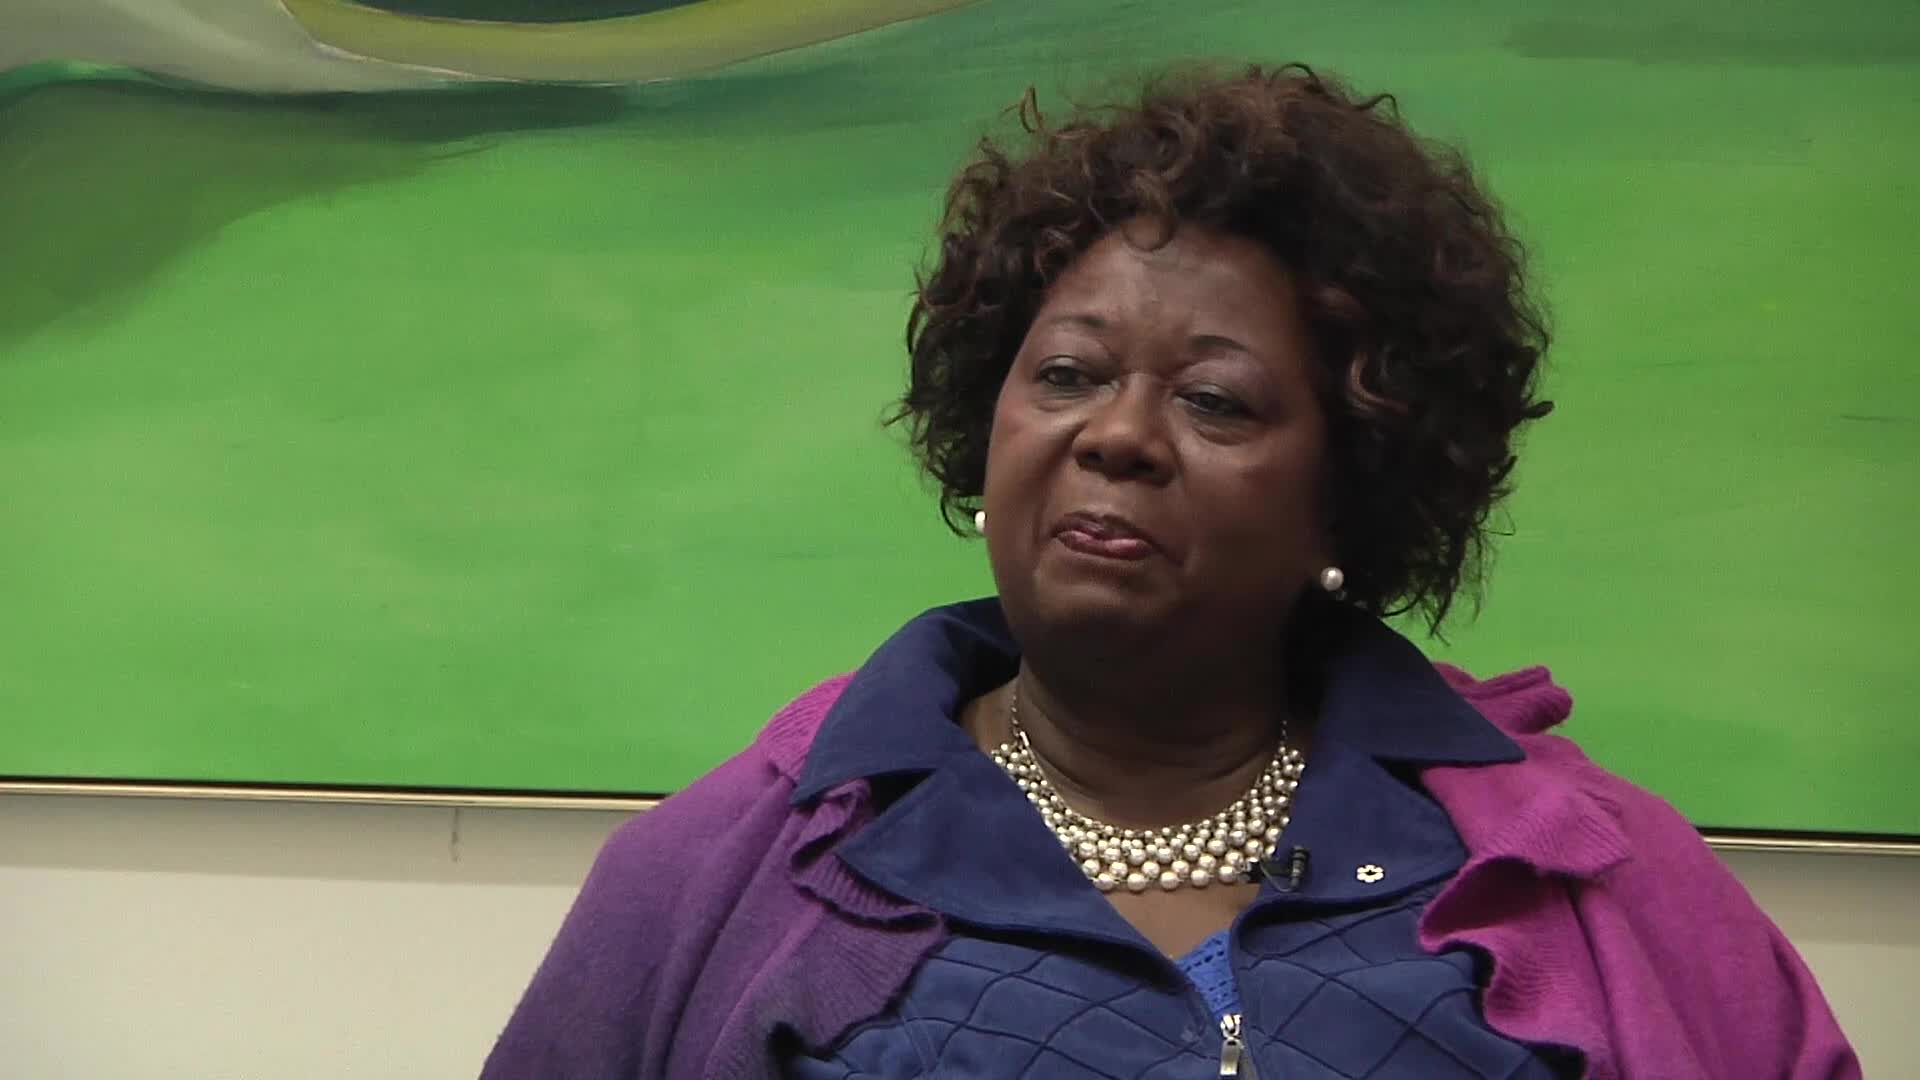 Jean Augustine interview: The story behind the collection